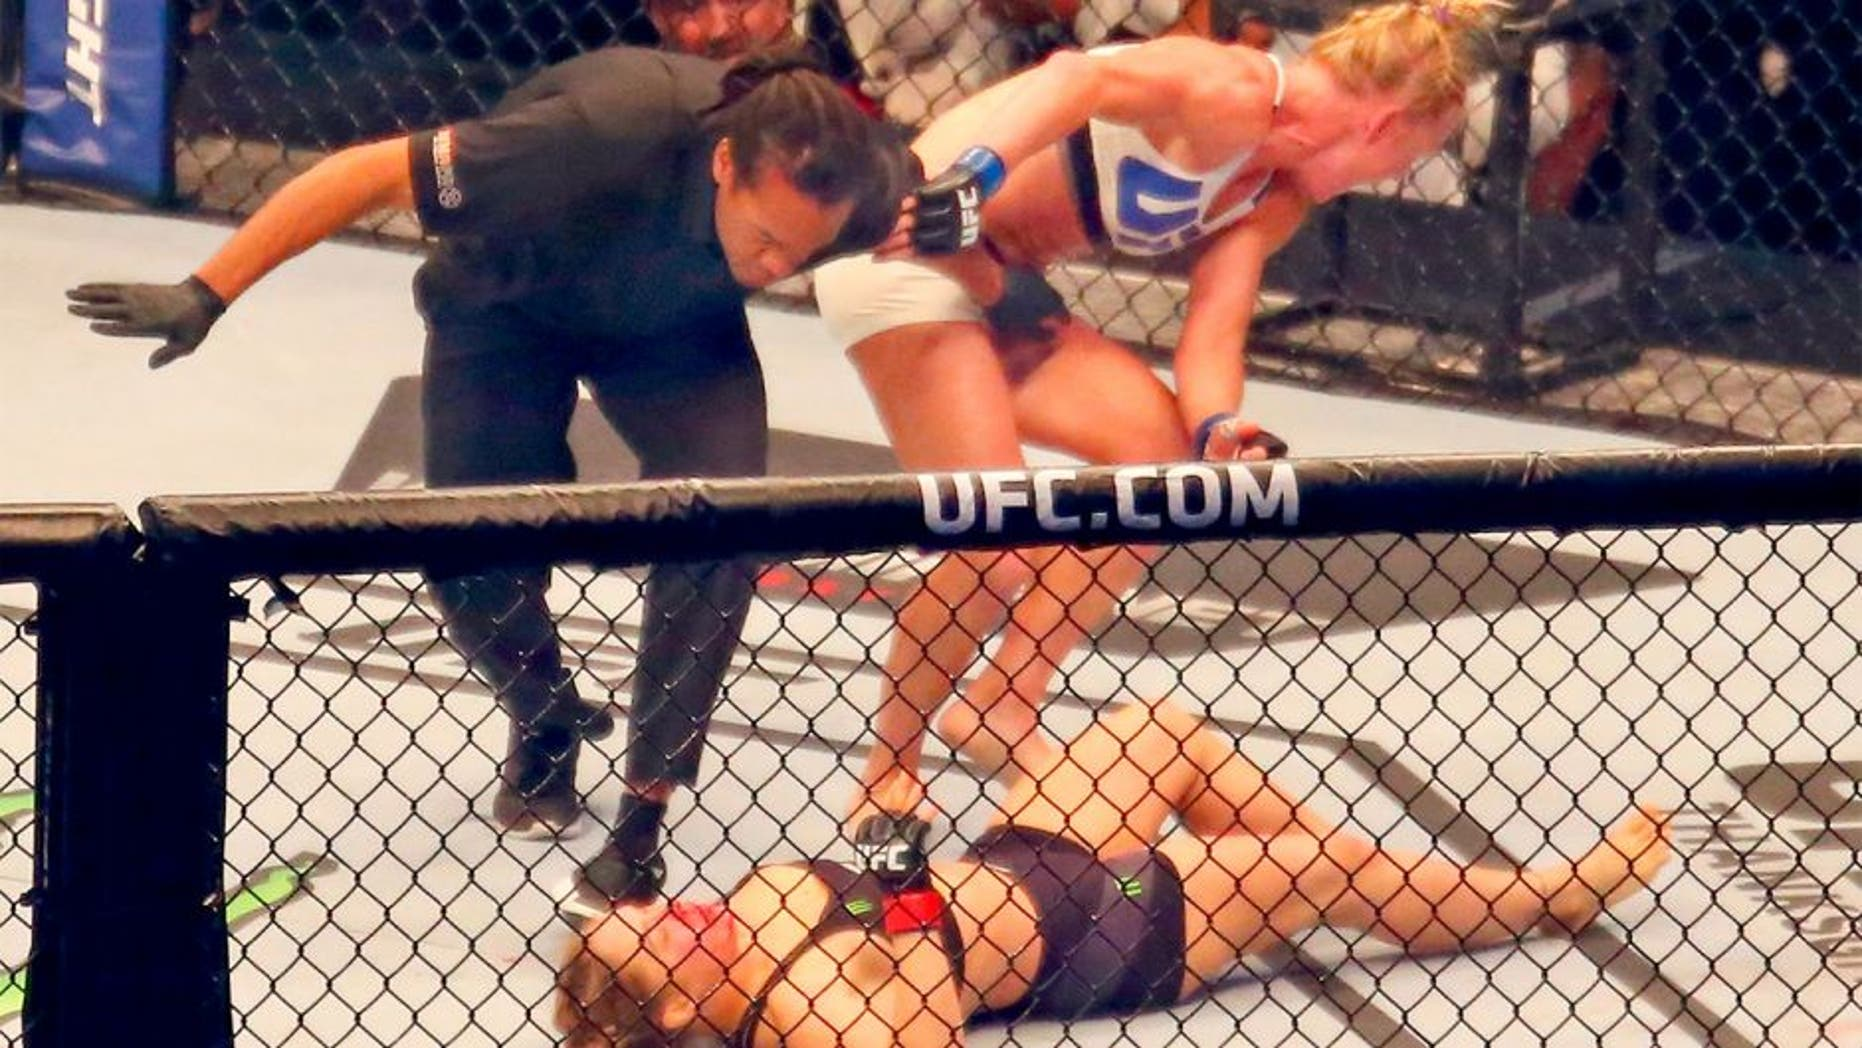 MELBOURNE, AUSTRALIA - NOVEMBER 15: Referee Herb Dean ends the fight as New UFC women's bantamweight champion Holly Holm of the United States starts to celebrate her victory over Ronda Rousey of the United States in their UFC women's bantamweight championship bout during the UFC 193 event at Etihad Stadium on November 15, 2015 in Melbourne, Australia. (Photo by Scott Barbour /Zuffa LLC/Zuffa LLC via Getty Images)